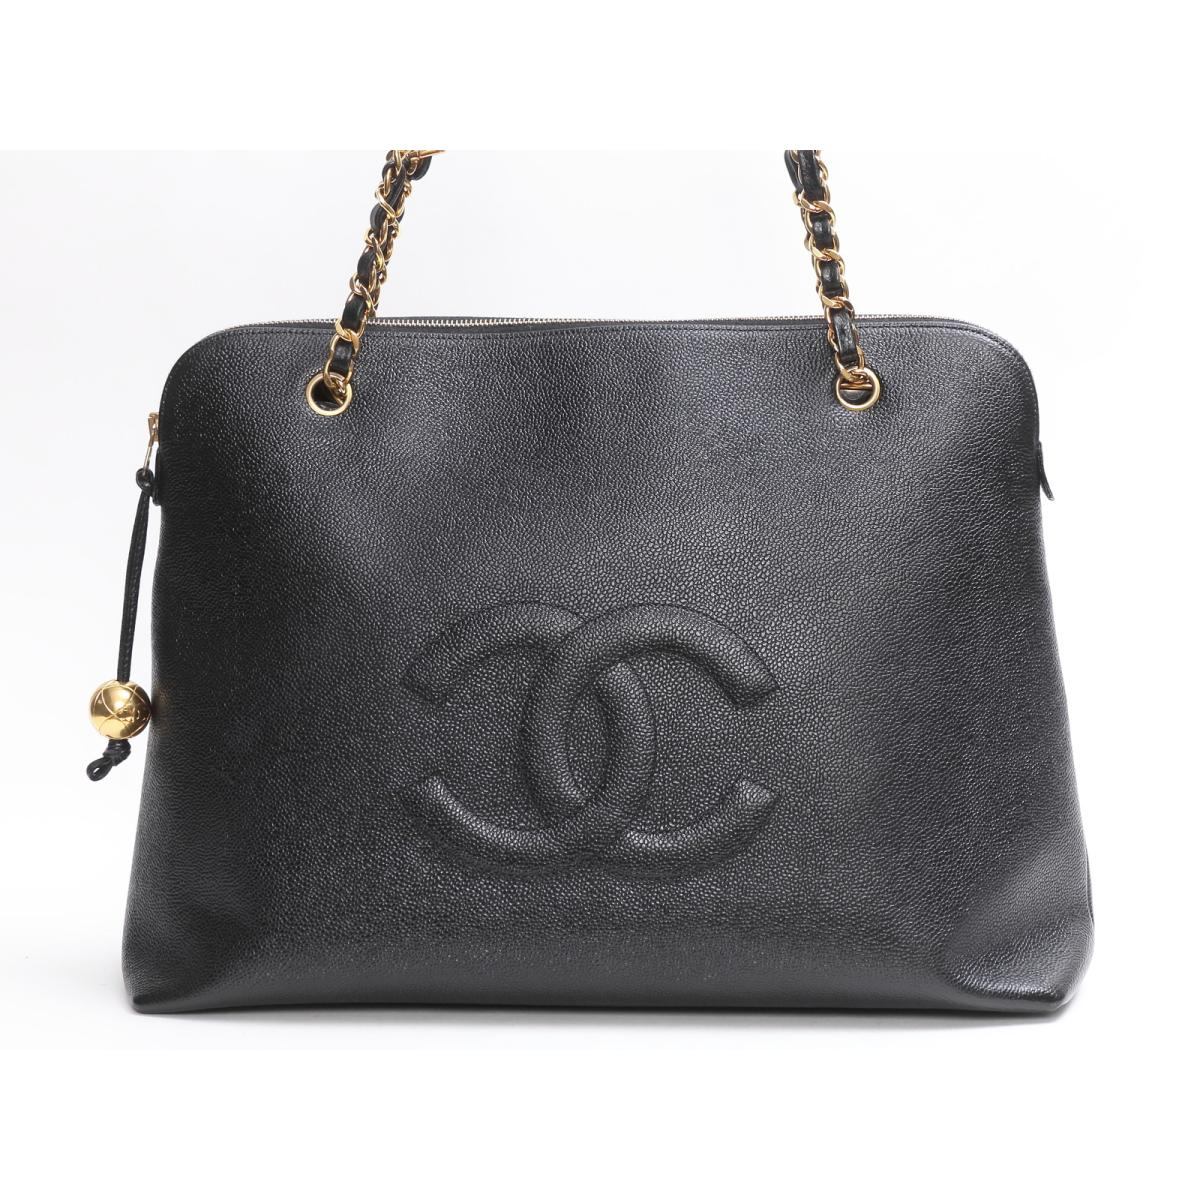 CHANEL バッグ  チェーントート